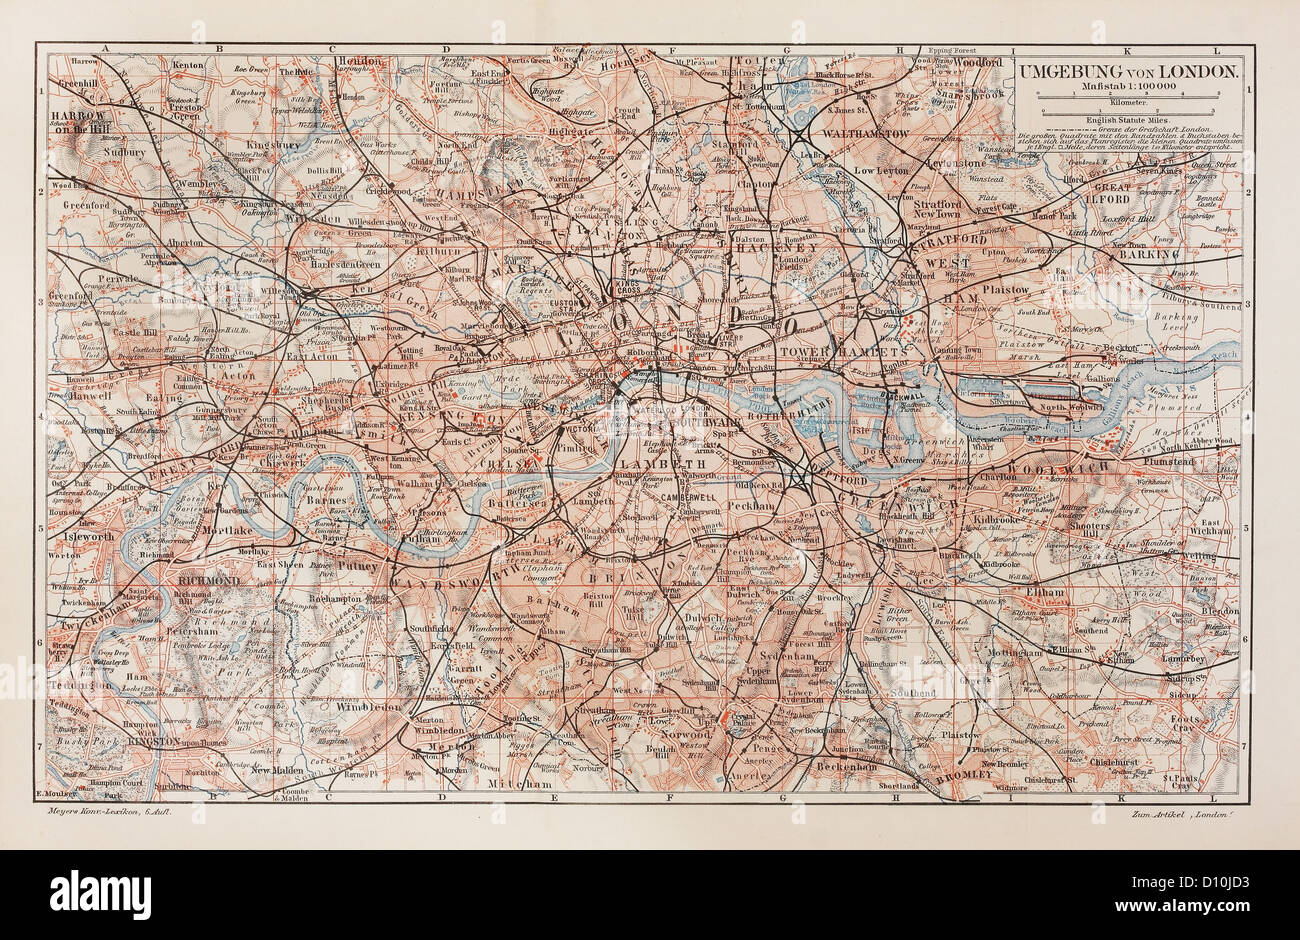 Vintage map of London and surroundings - Stock Image